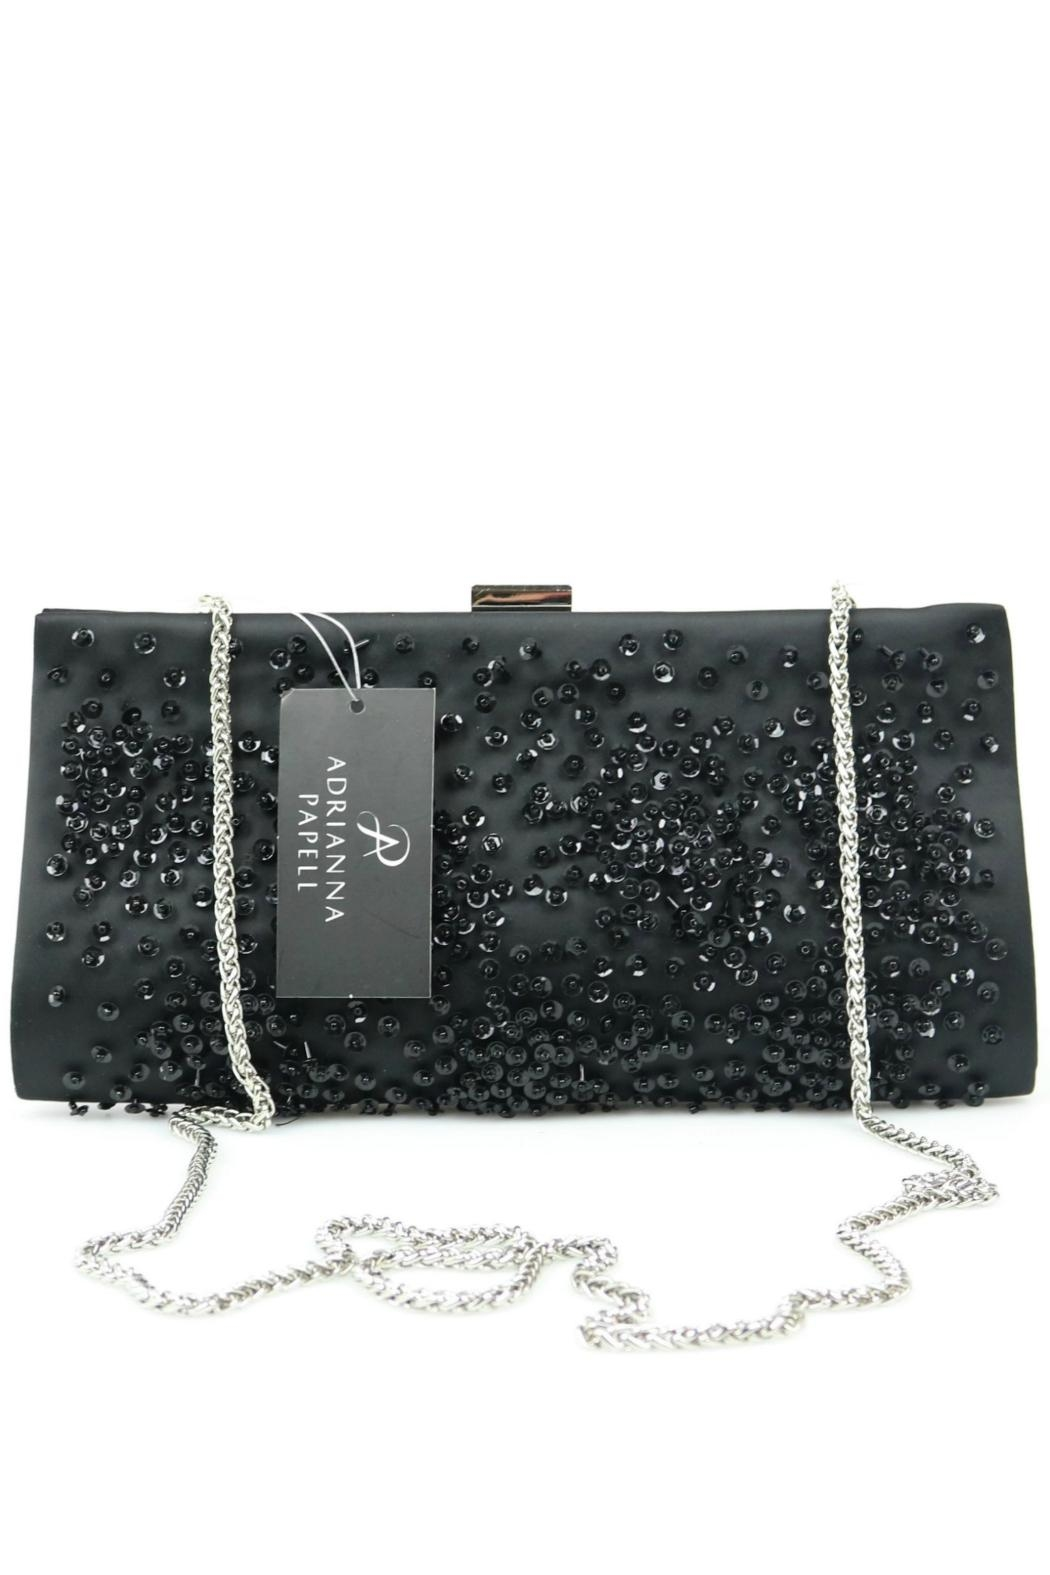 Adrianna Papell Norah Black-Beaded Clutch - Side Cropped Image